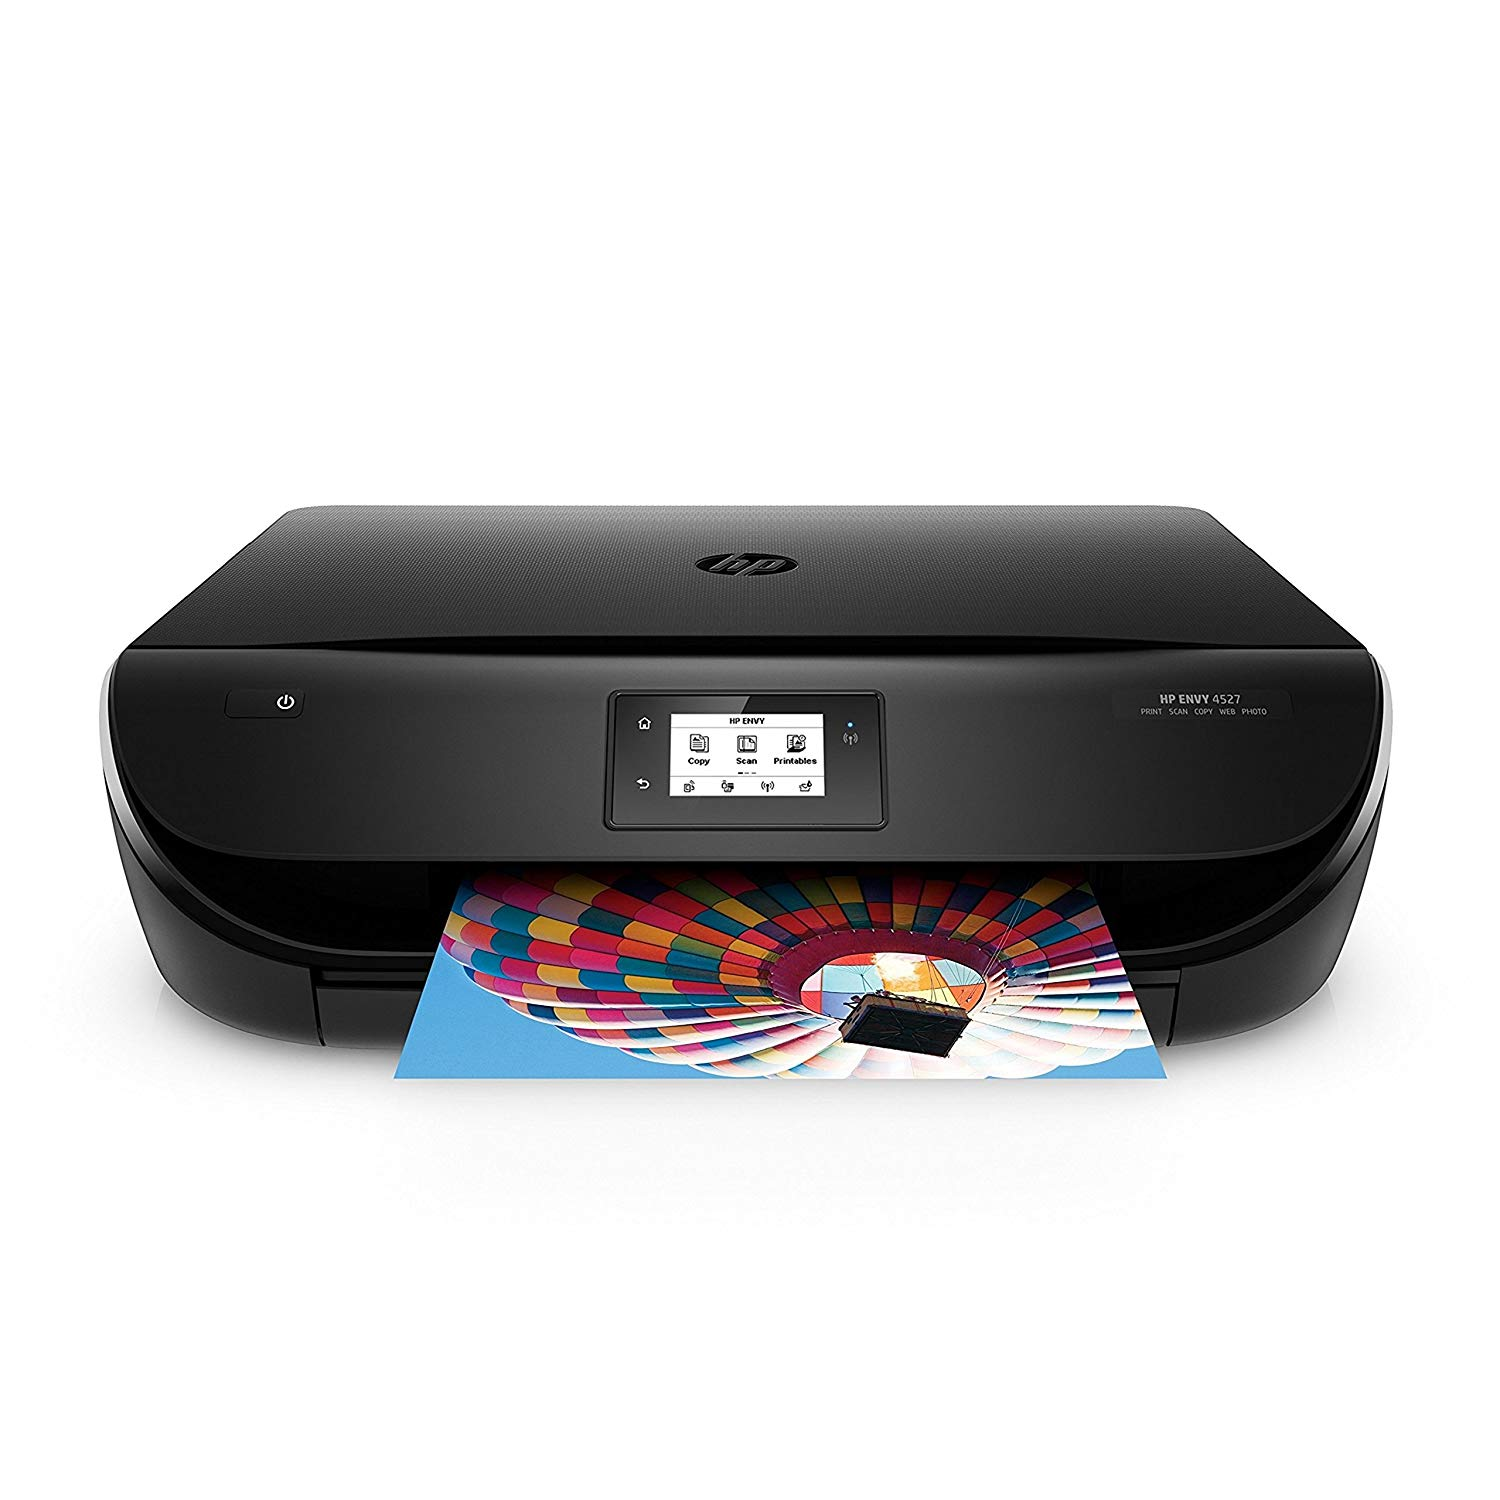 HP Envy 4527 All-in-One Printer, Instant Ink Compatible with 4 Months Trial for £34.99